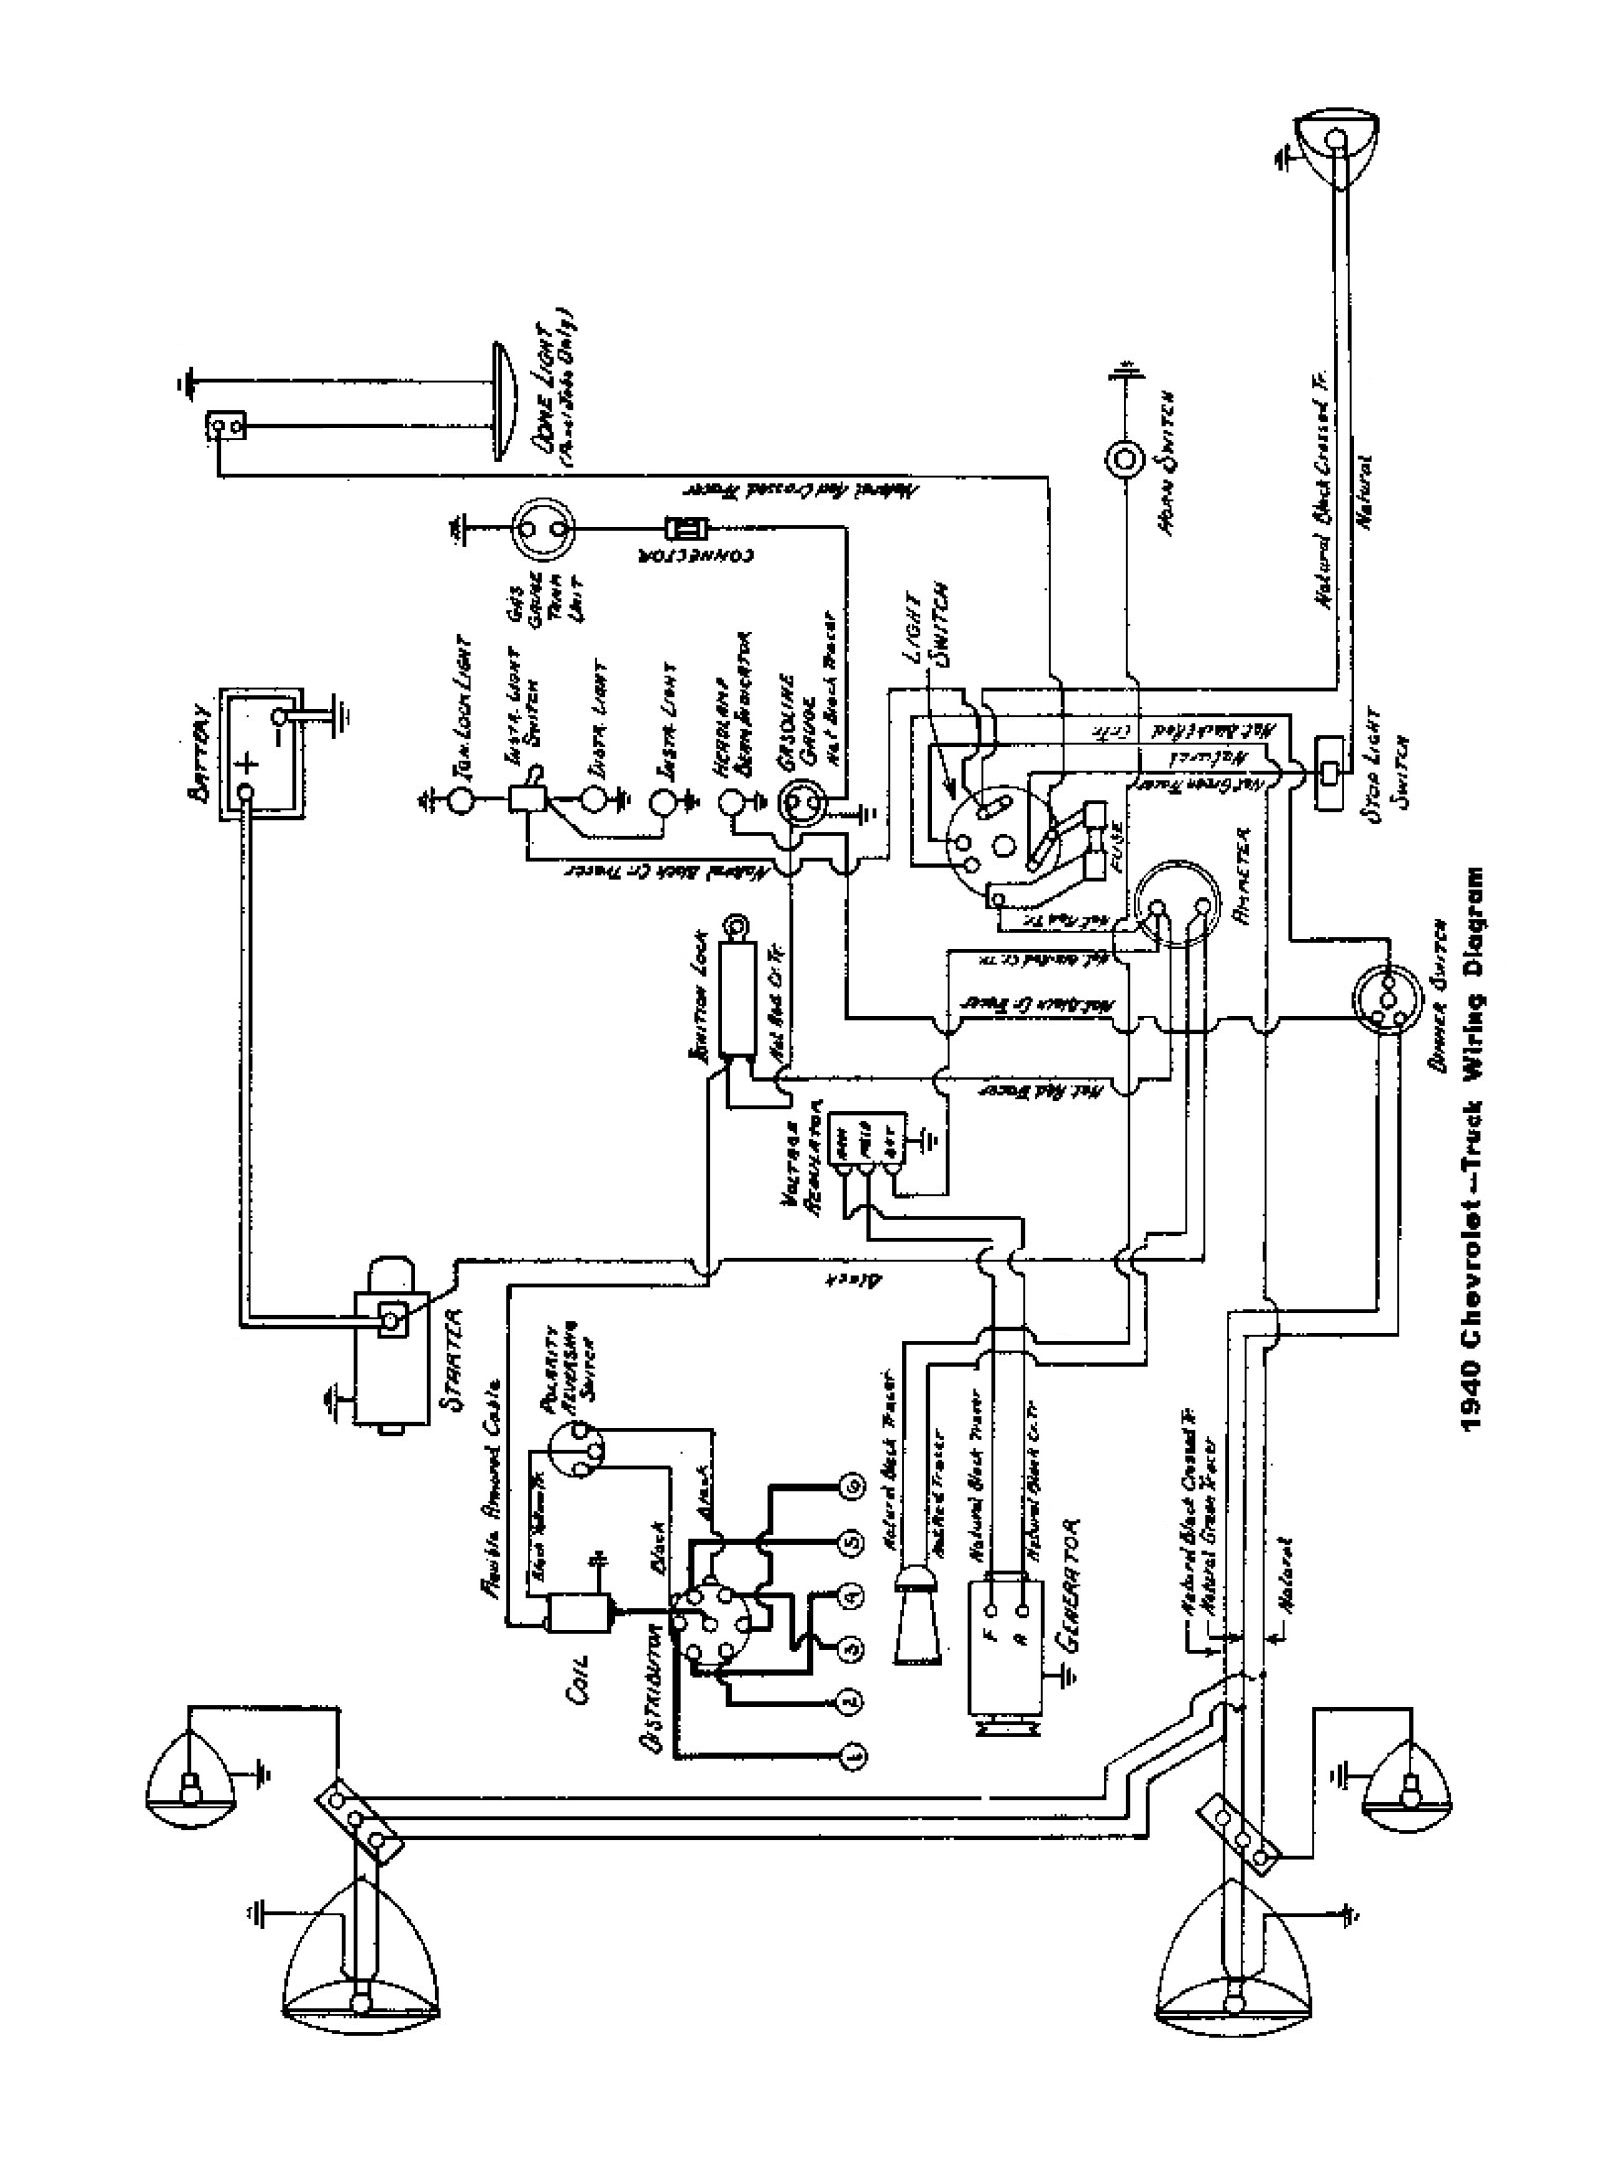 40truck chevy truck wiring diagram 87 chevy truck wiring diagram \u2022 wiring Basic Turn Signal Wiring Diagram at edmiracle.co